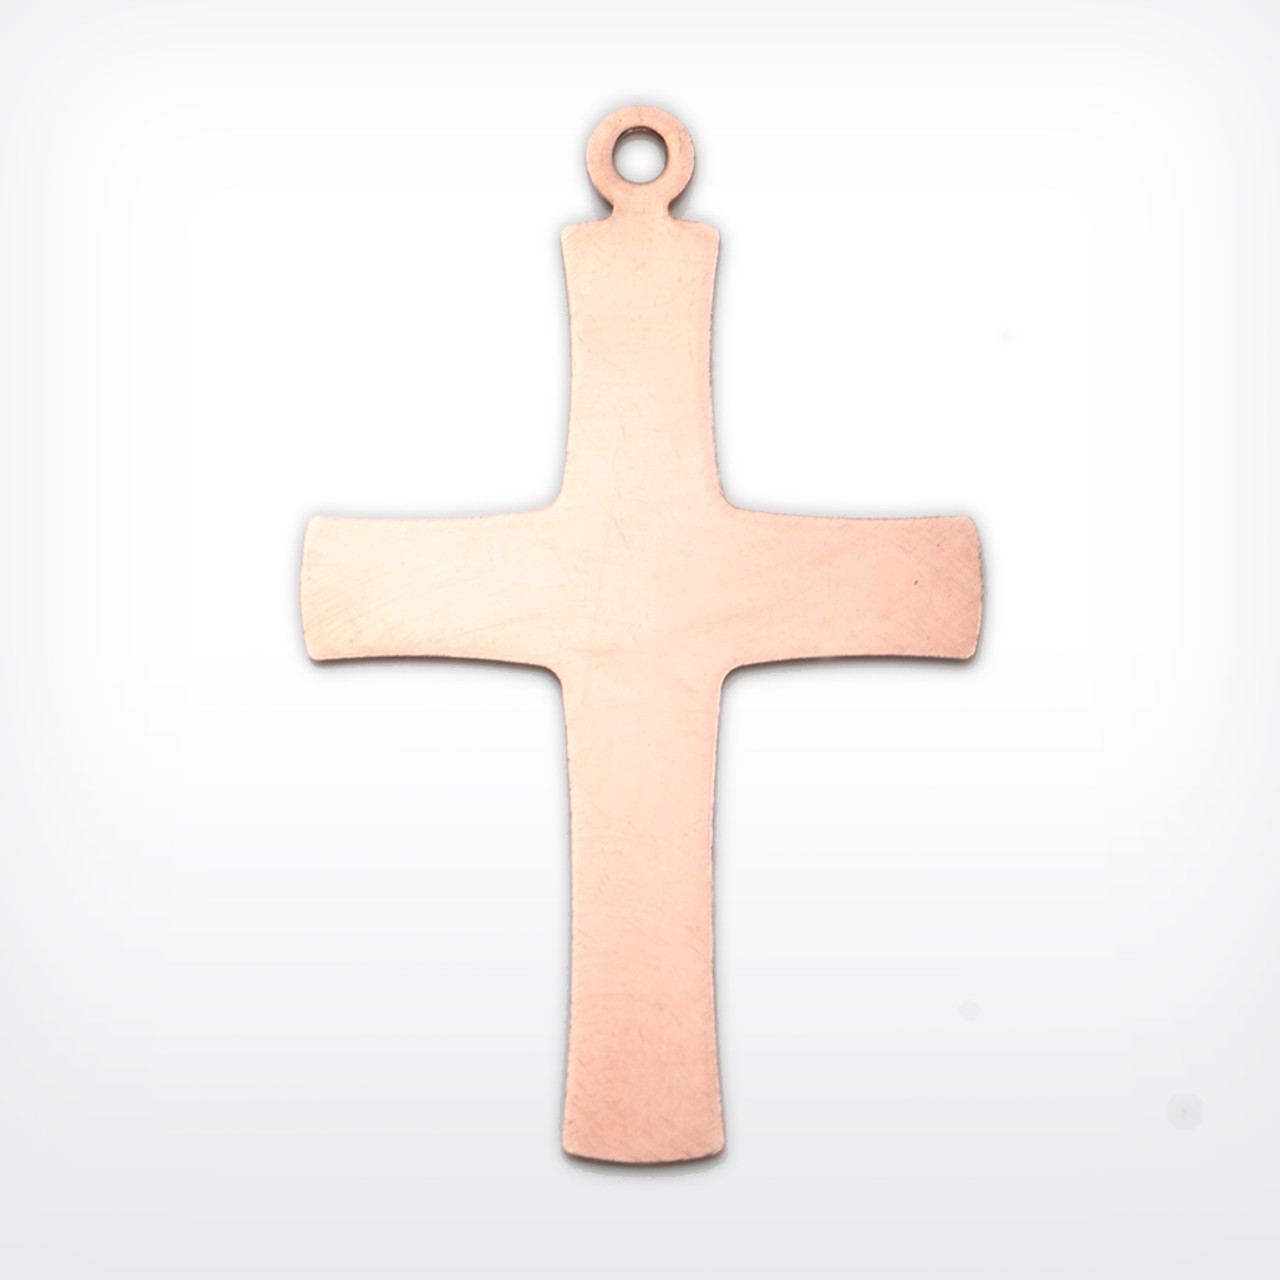 Copper Blank Cross Stamped Shape for Enamelling & Other Crafts